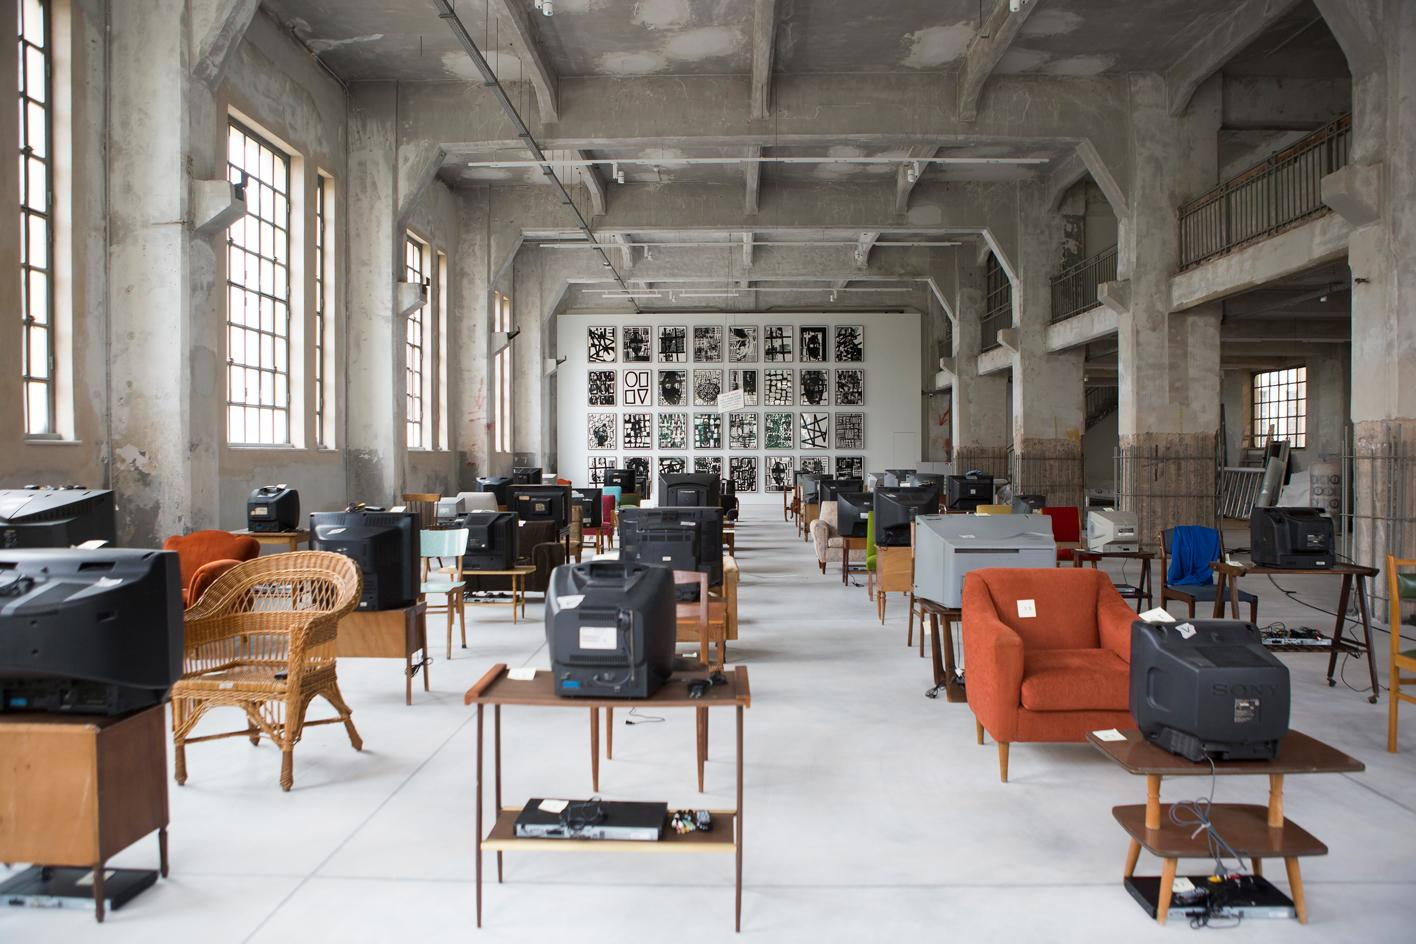 Kutluğ Ataman (b. 1961, Istanbul, Turkey) Küba, 2004 40 channel video installation with sound, 40 used chairs, 40 tables, 40 television sets Dimensions variable D.Daskalopoulos Collection & Adam Pendleton (b. 1984, Richmond, Virginia, USA) Our Ideas #2, 2